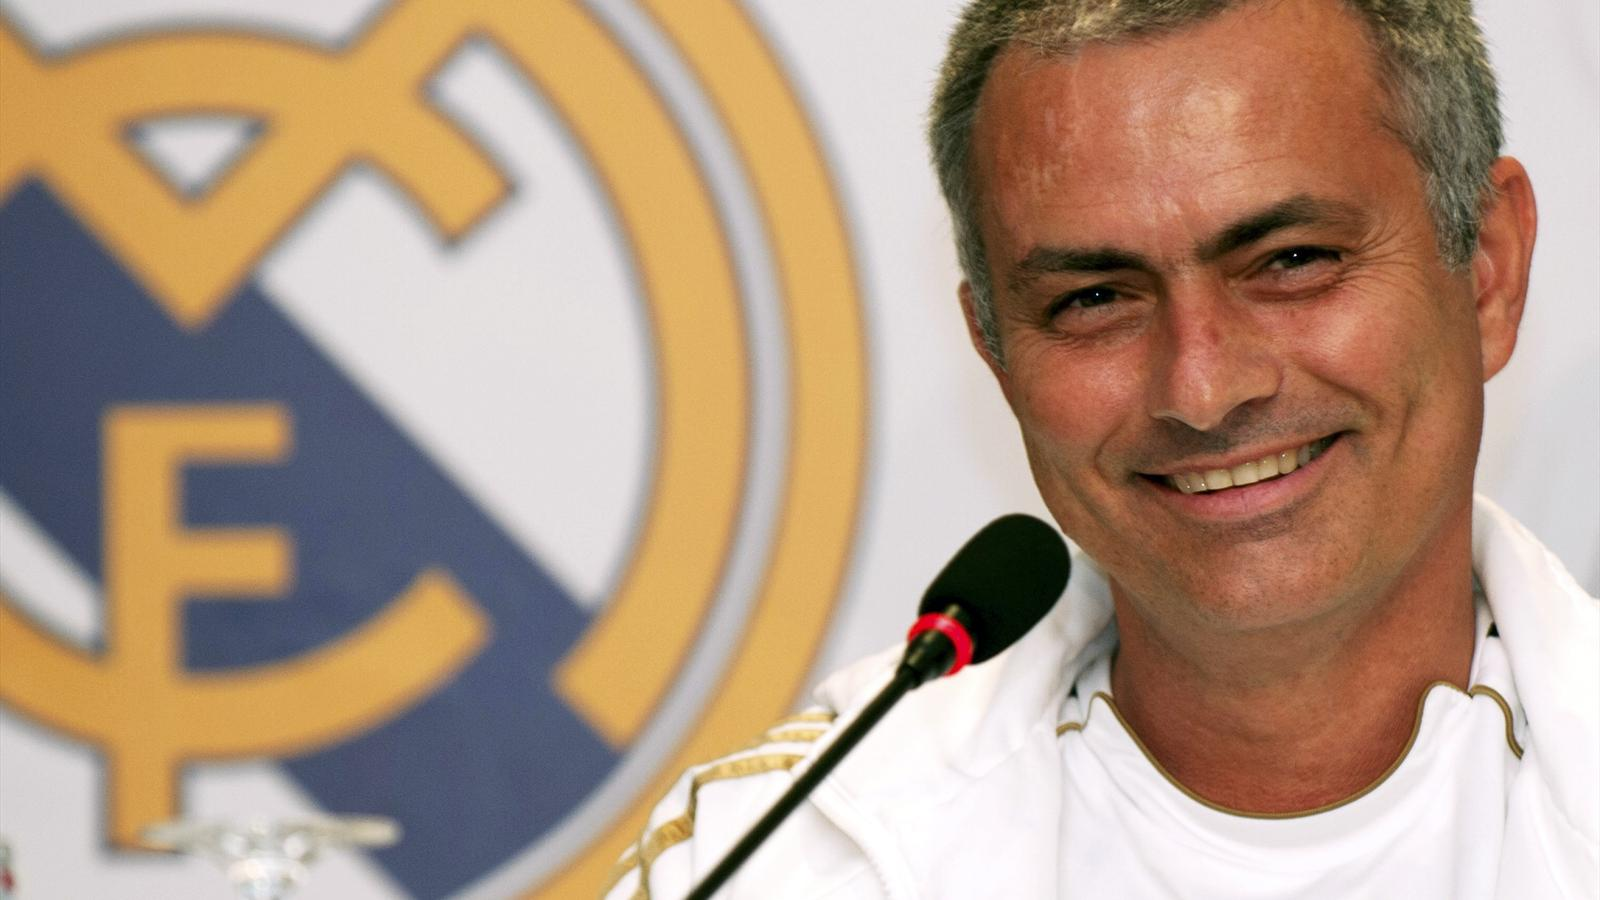 Jose Mourinho during his time as Real Madrid manager